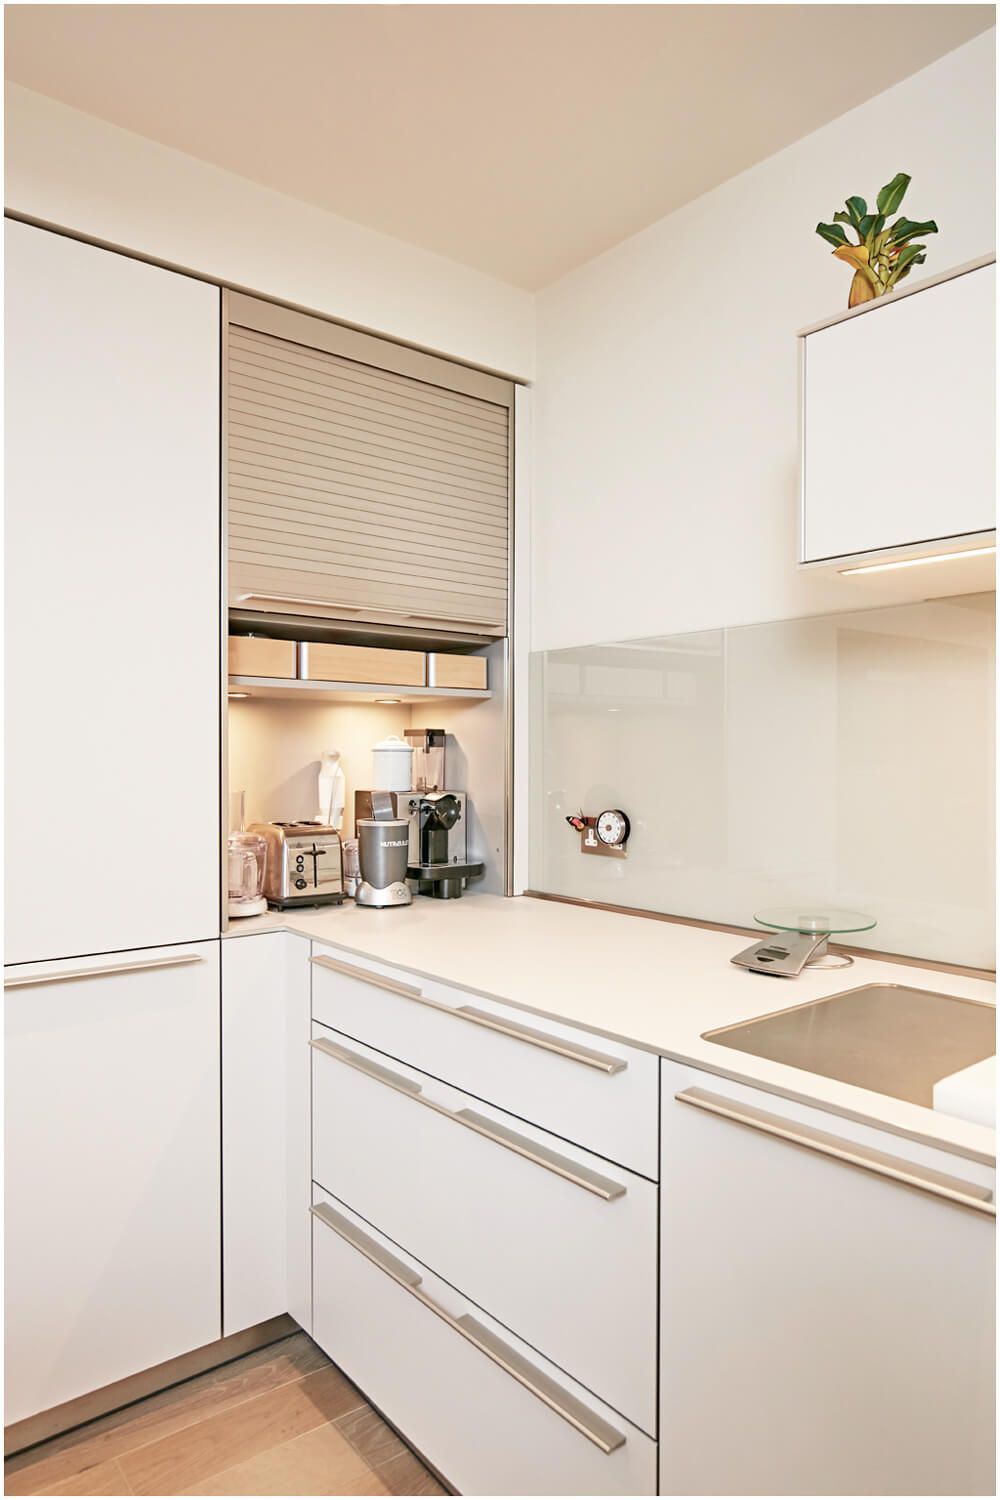 Best Kitchen Gallery: A Bulthaup B3 Roller Shutter Cabi Creates A Space To Hide Away of Kitchen Counter Shutters on rachelxblog.com